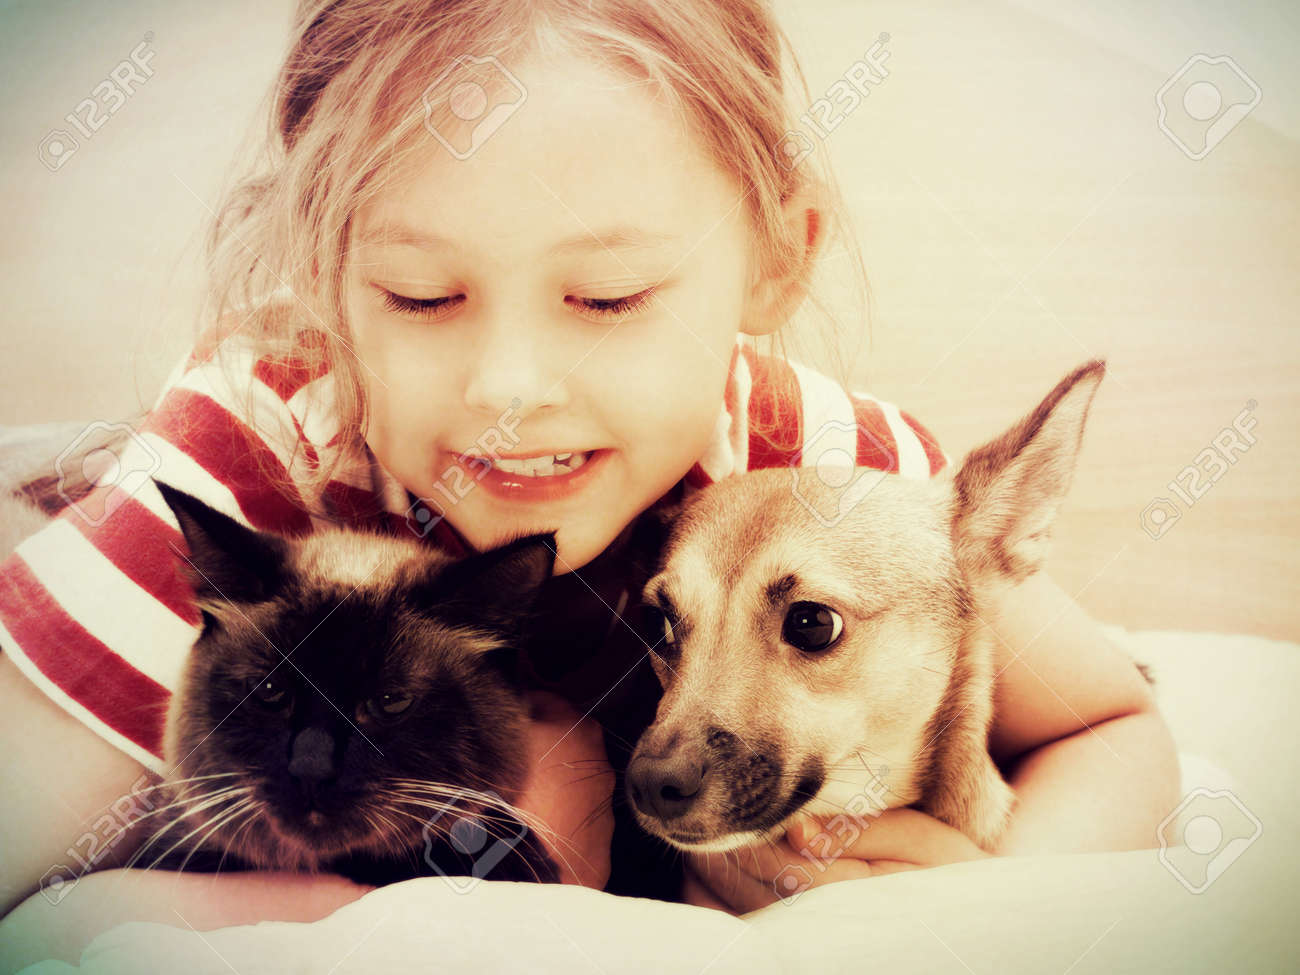 child and dog and cat - 27724004